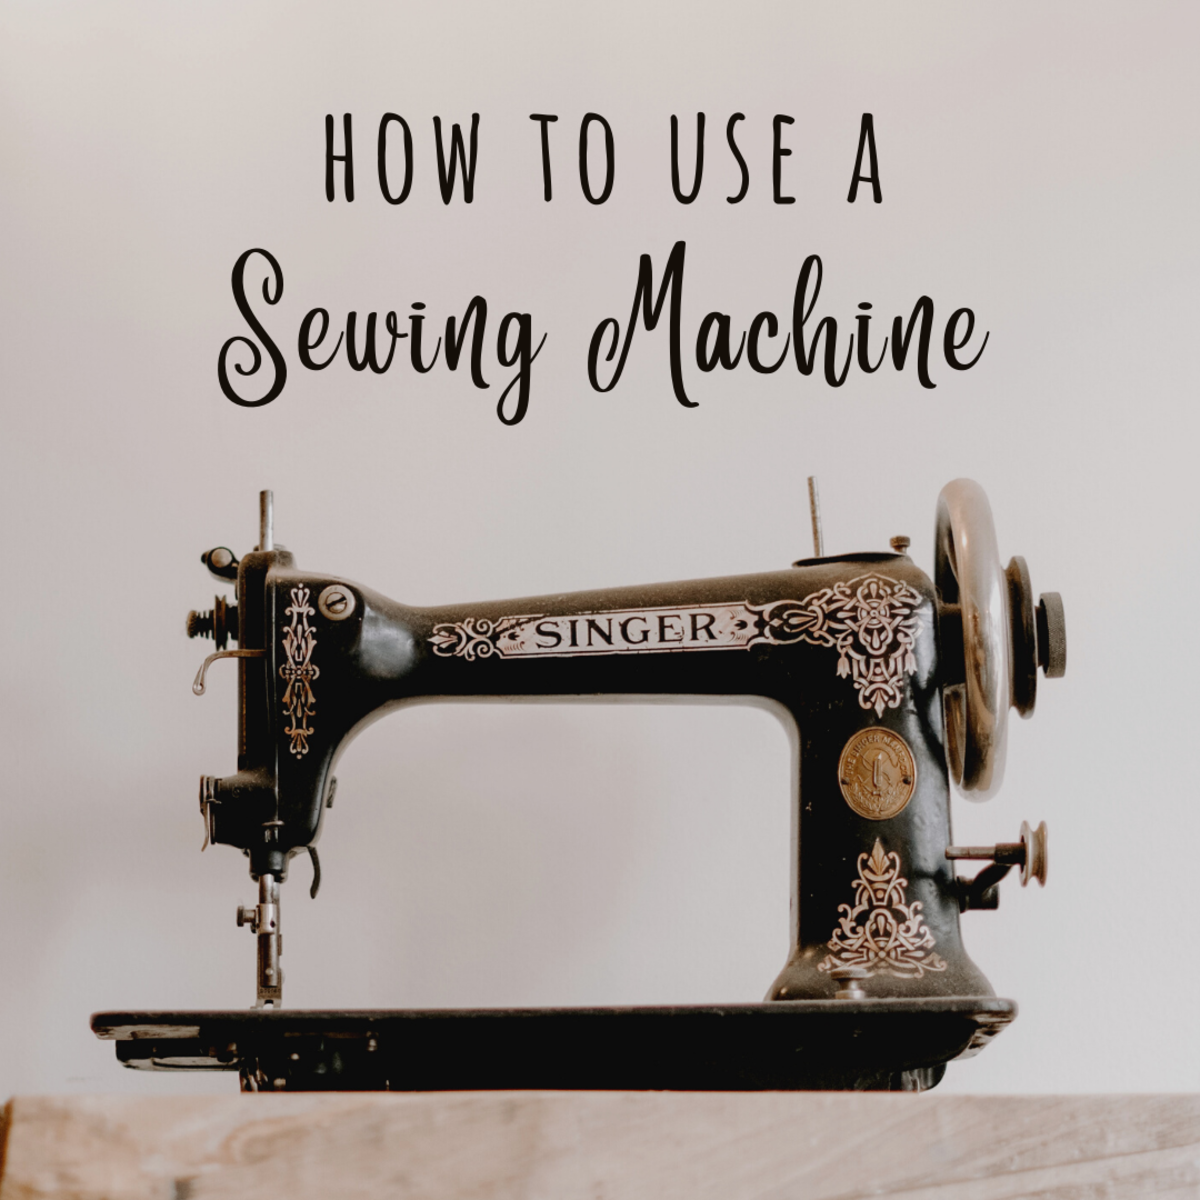 Learn how to prep and use a sewing machine